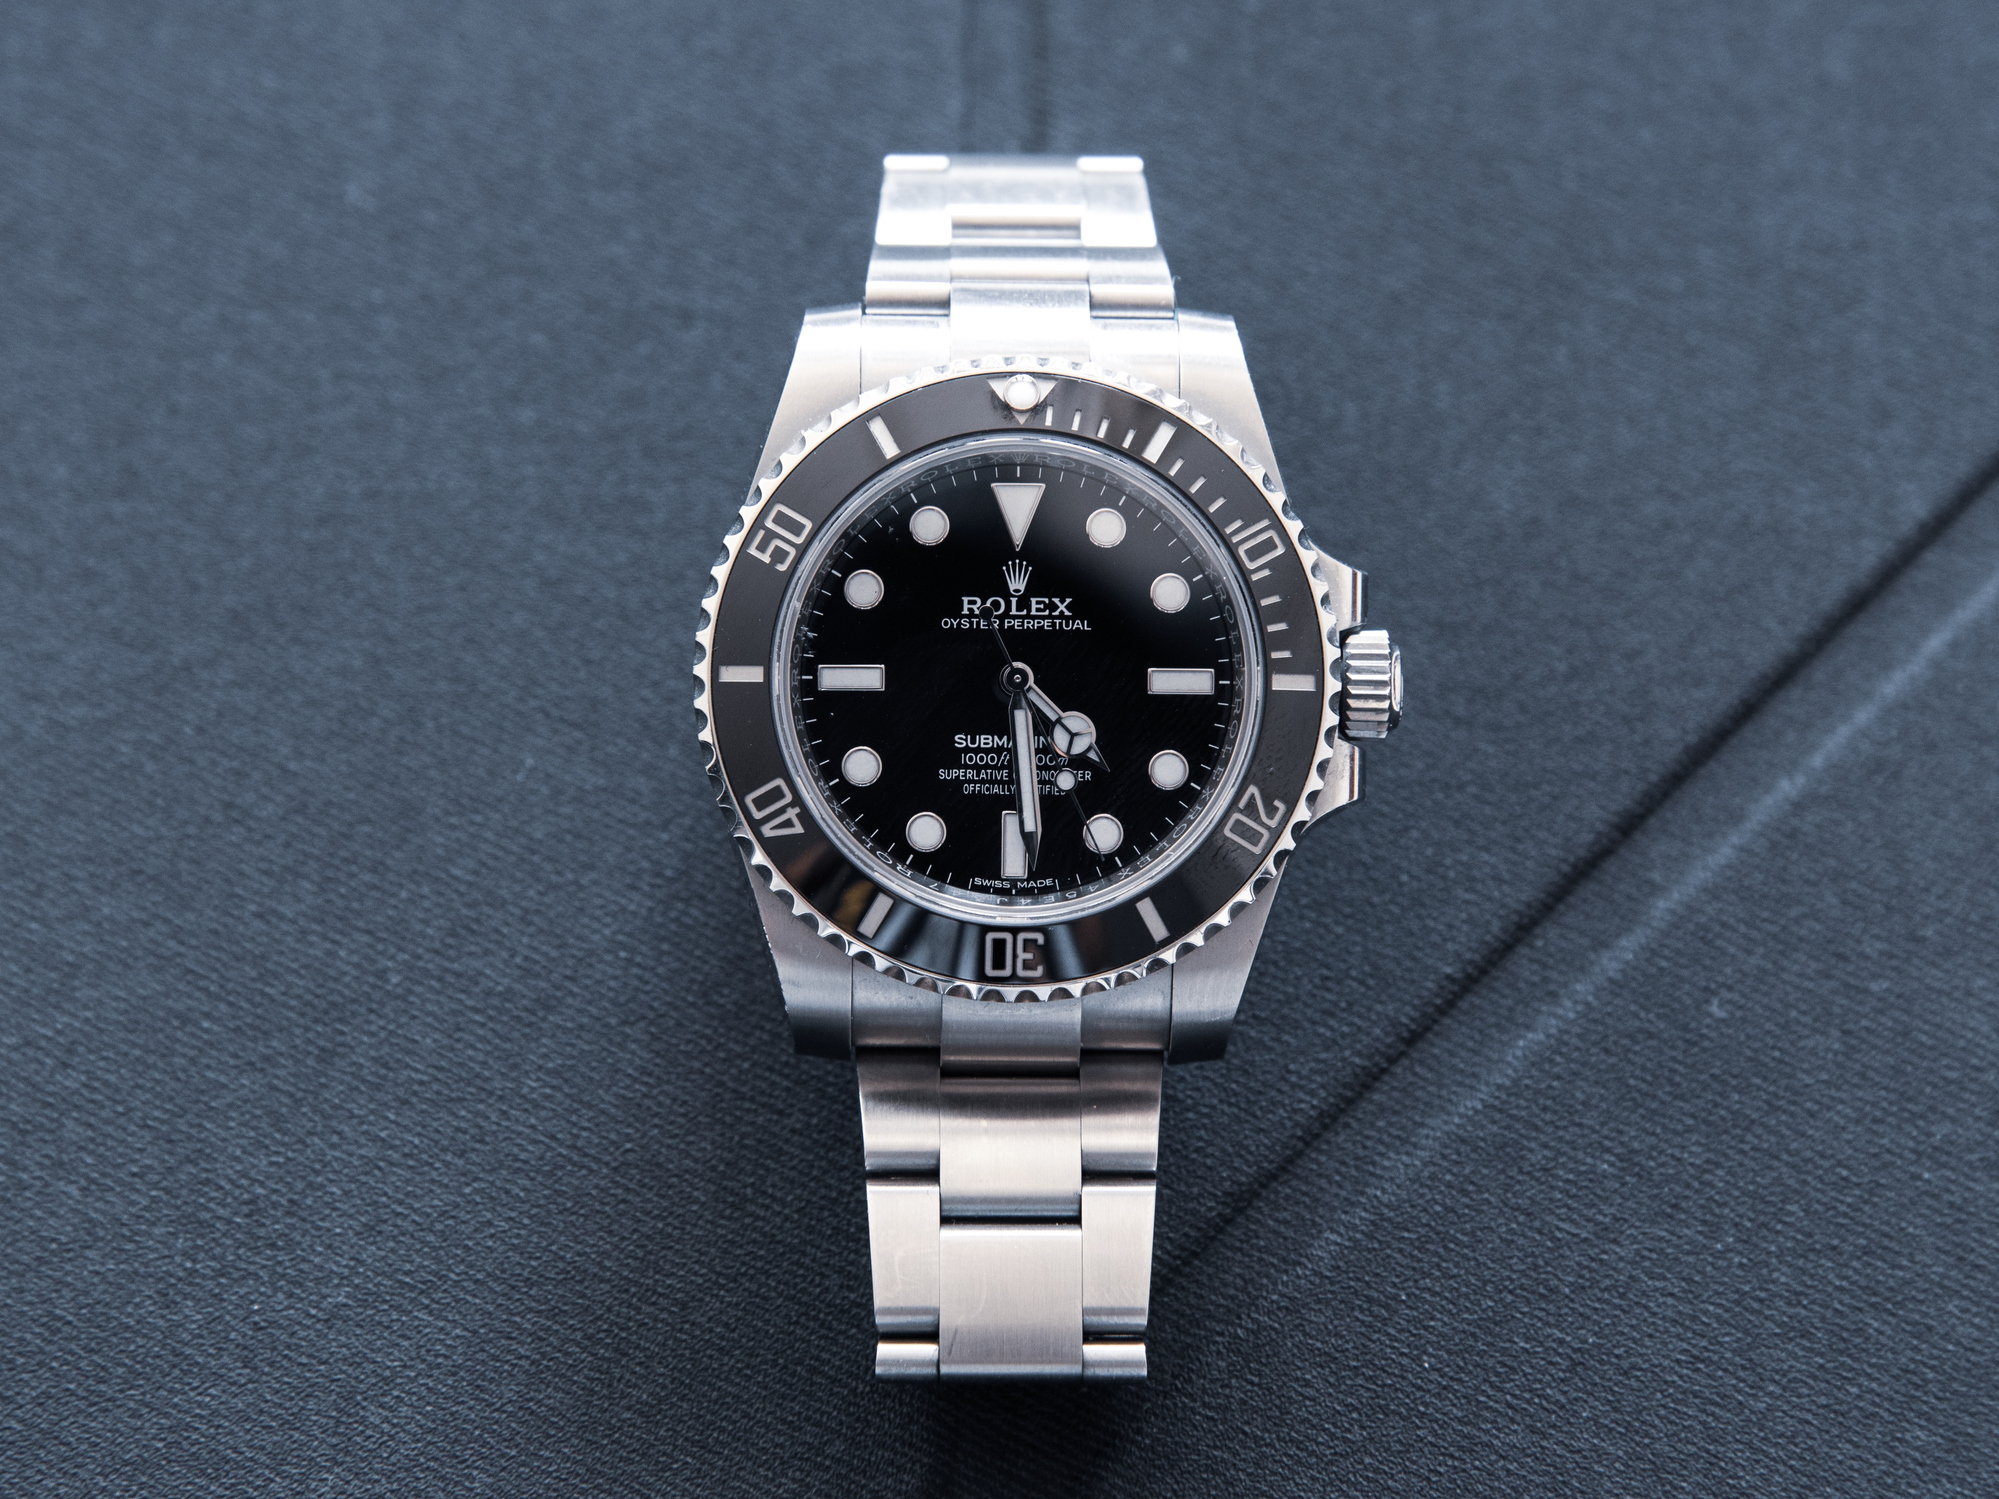 Rolex Submariner, diving watch